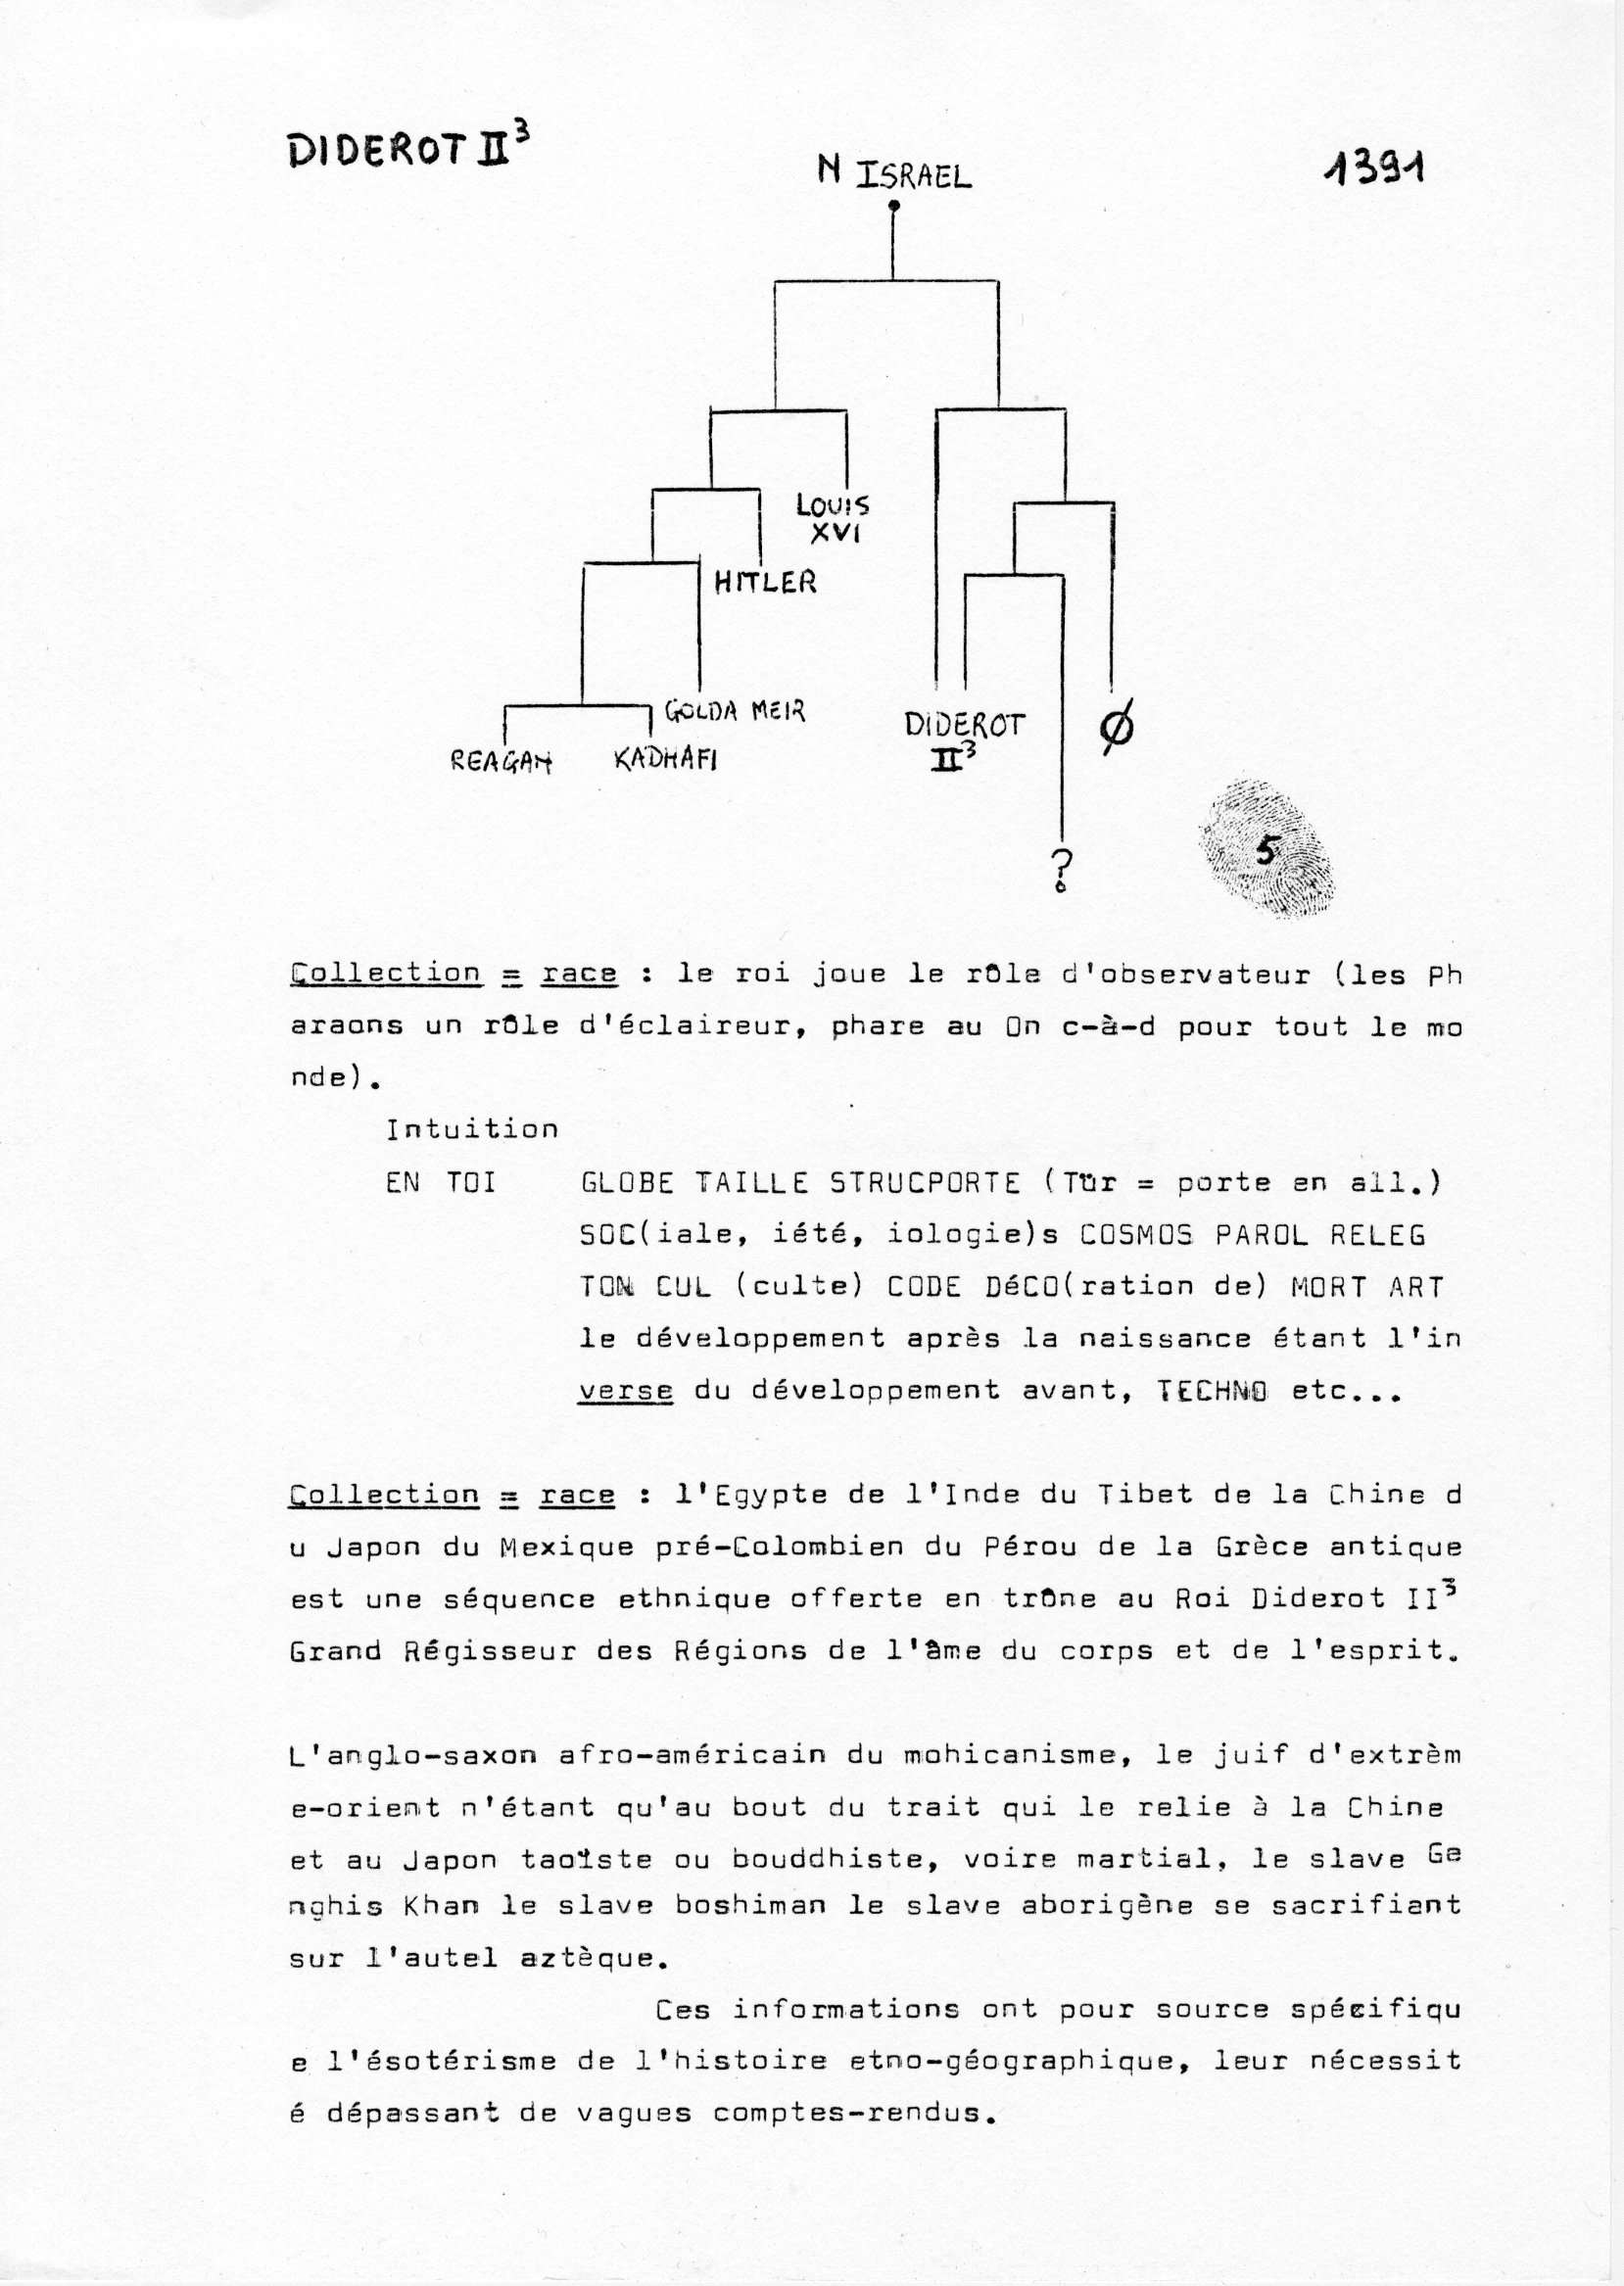 page 1391 Diderot II p3 N